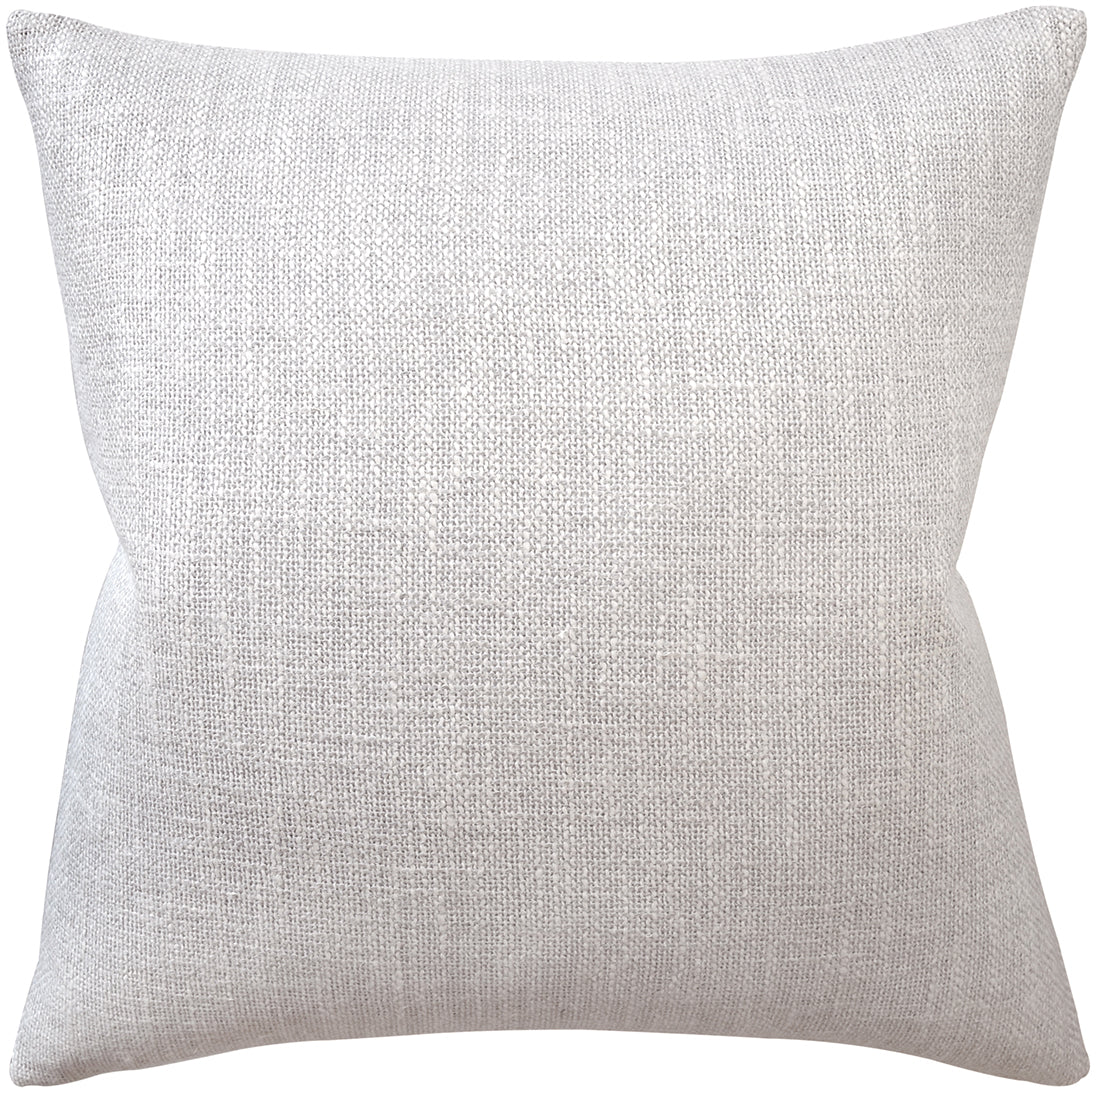 Ryan Studio Amagansett Pillow in Grey